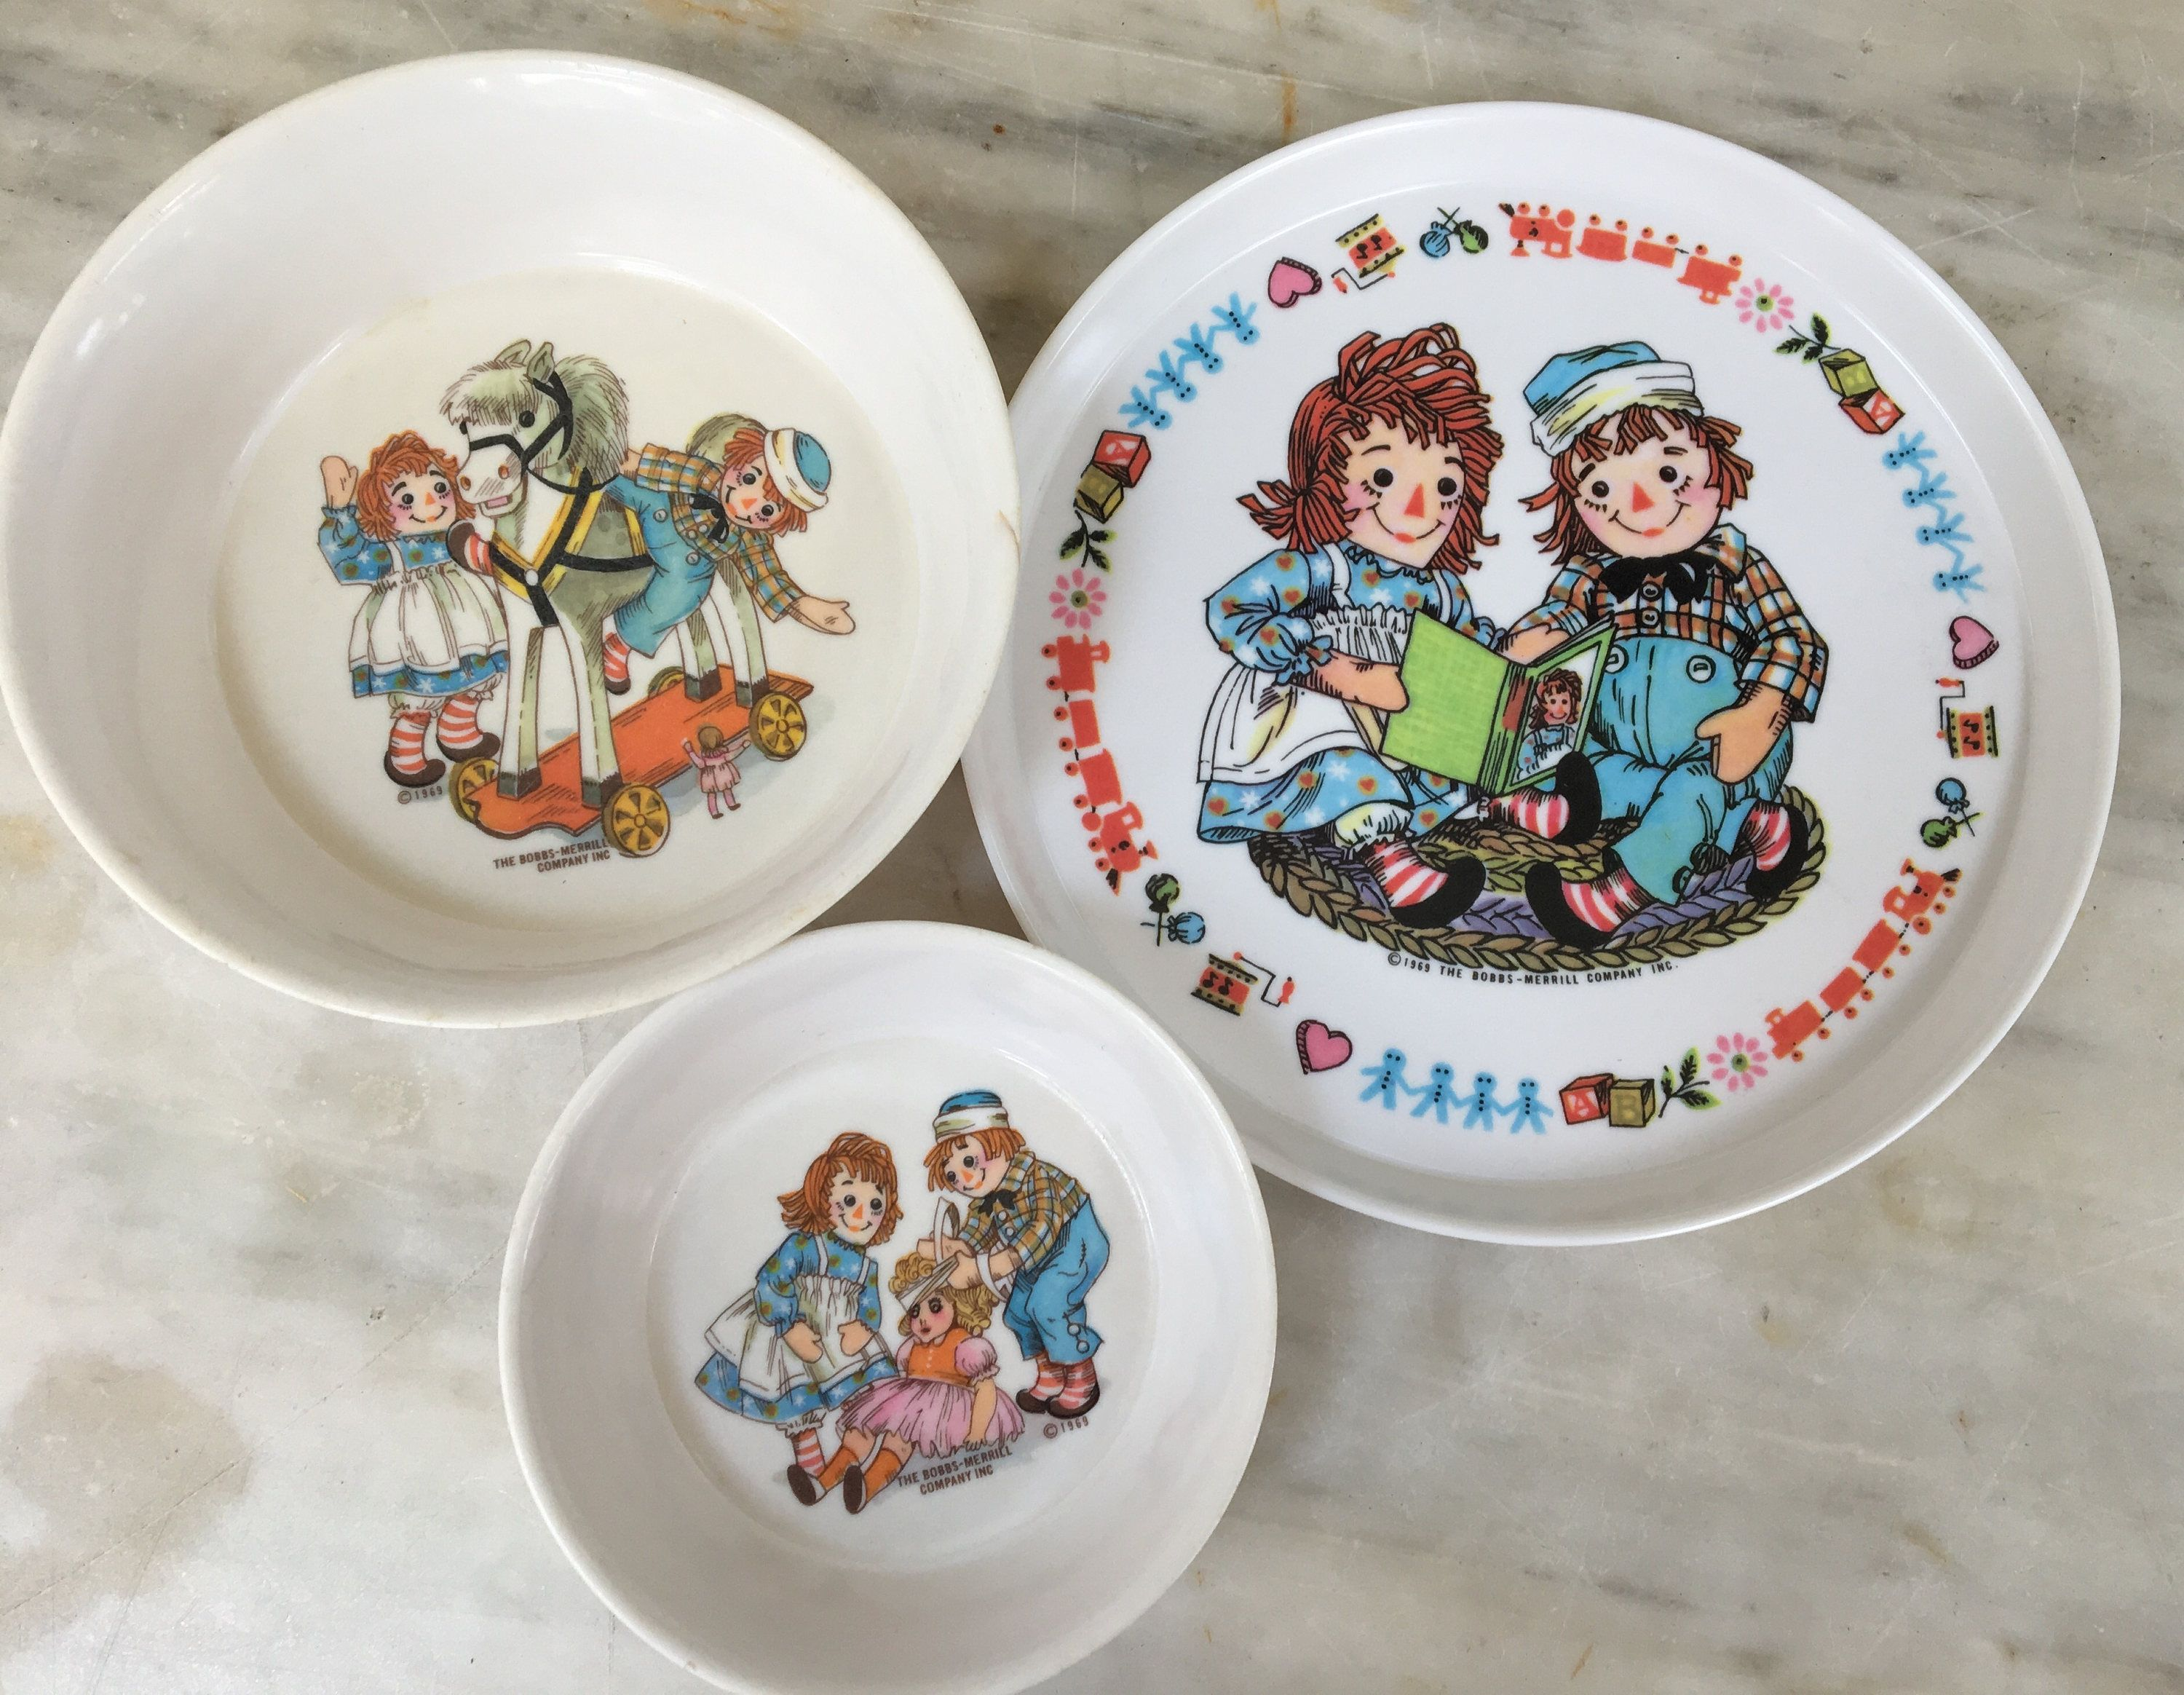 Vintage Raggedy Ann And Andy Child S Plastic Plate Bowls 1969 Bobbs Merrill Company Oneida 3258 3243 By M Childrens Dishes Raggedy Ann Raggedy Ann And Andy